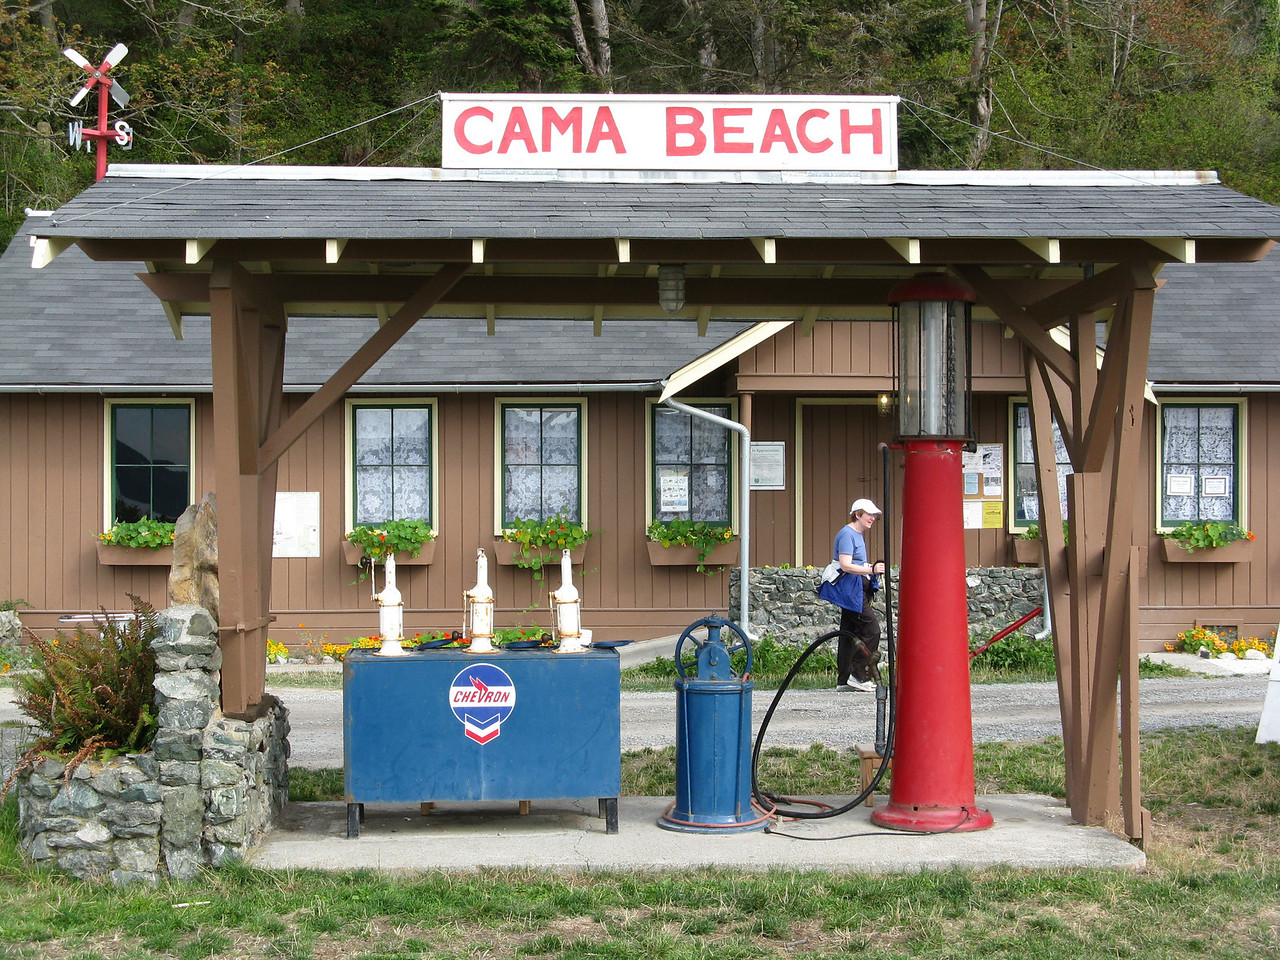 Cama Beach was a resort before the land and buildings were donated to the state.  Here is the antique fuel pump in front of the camp store.